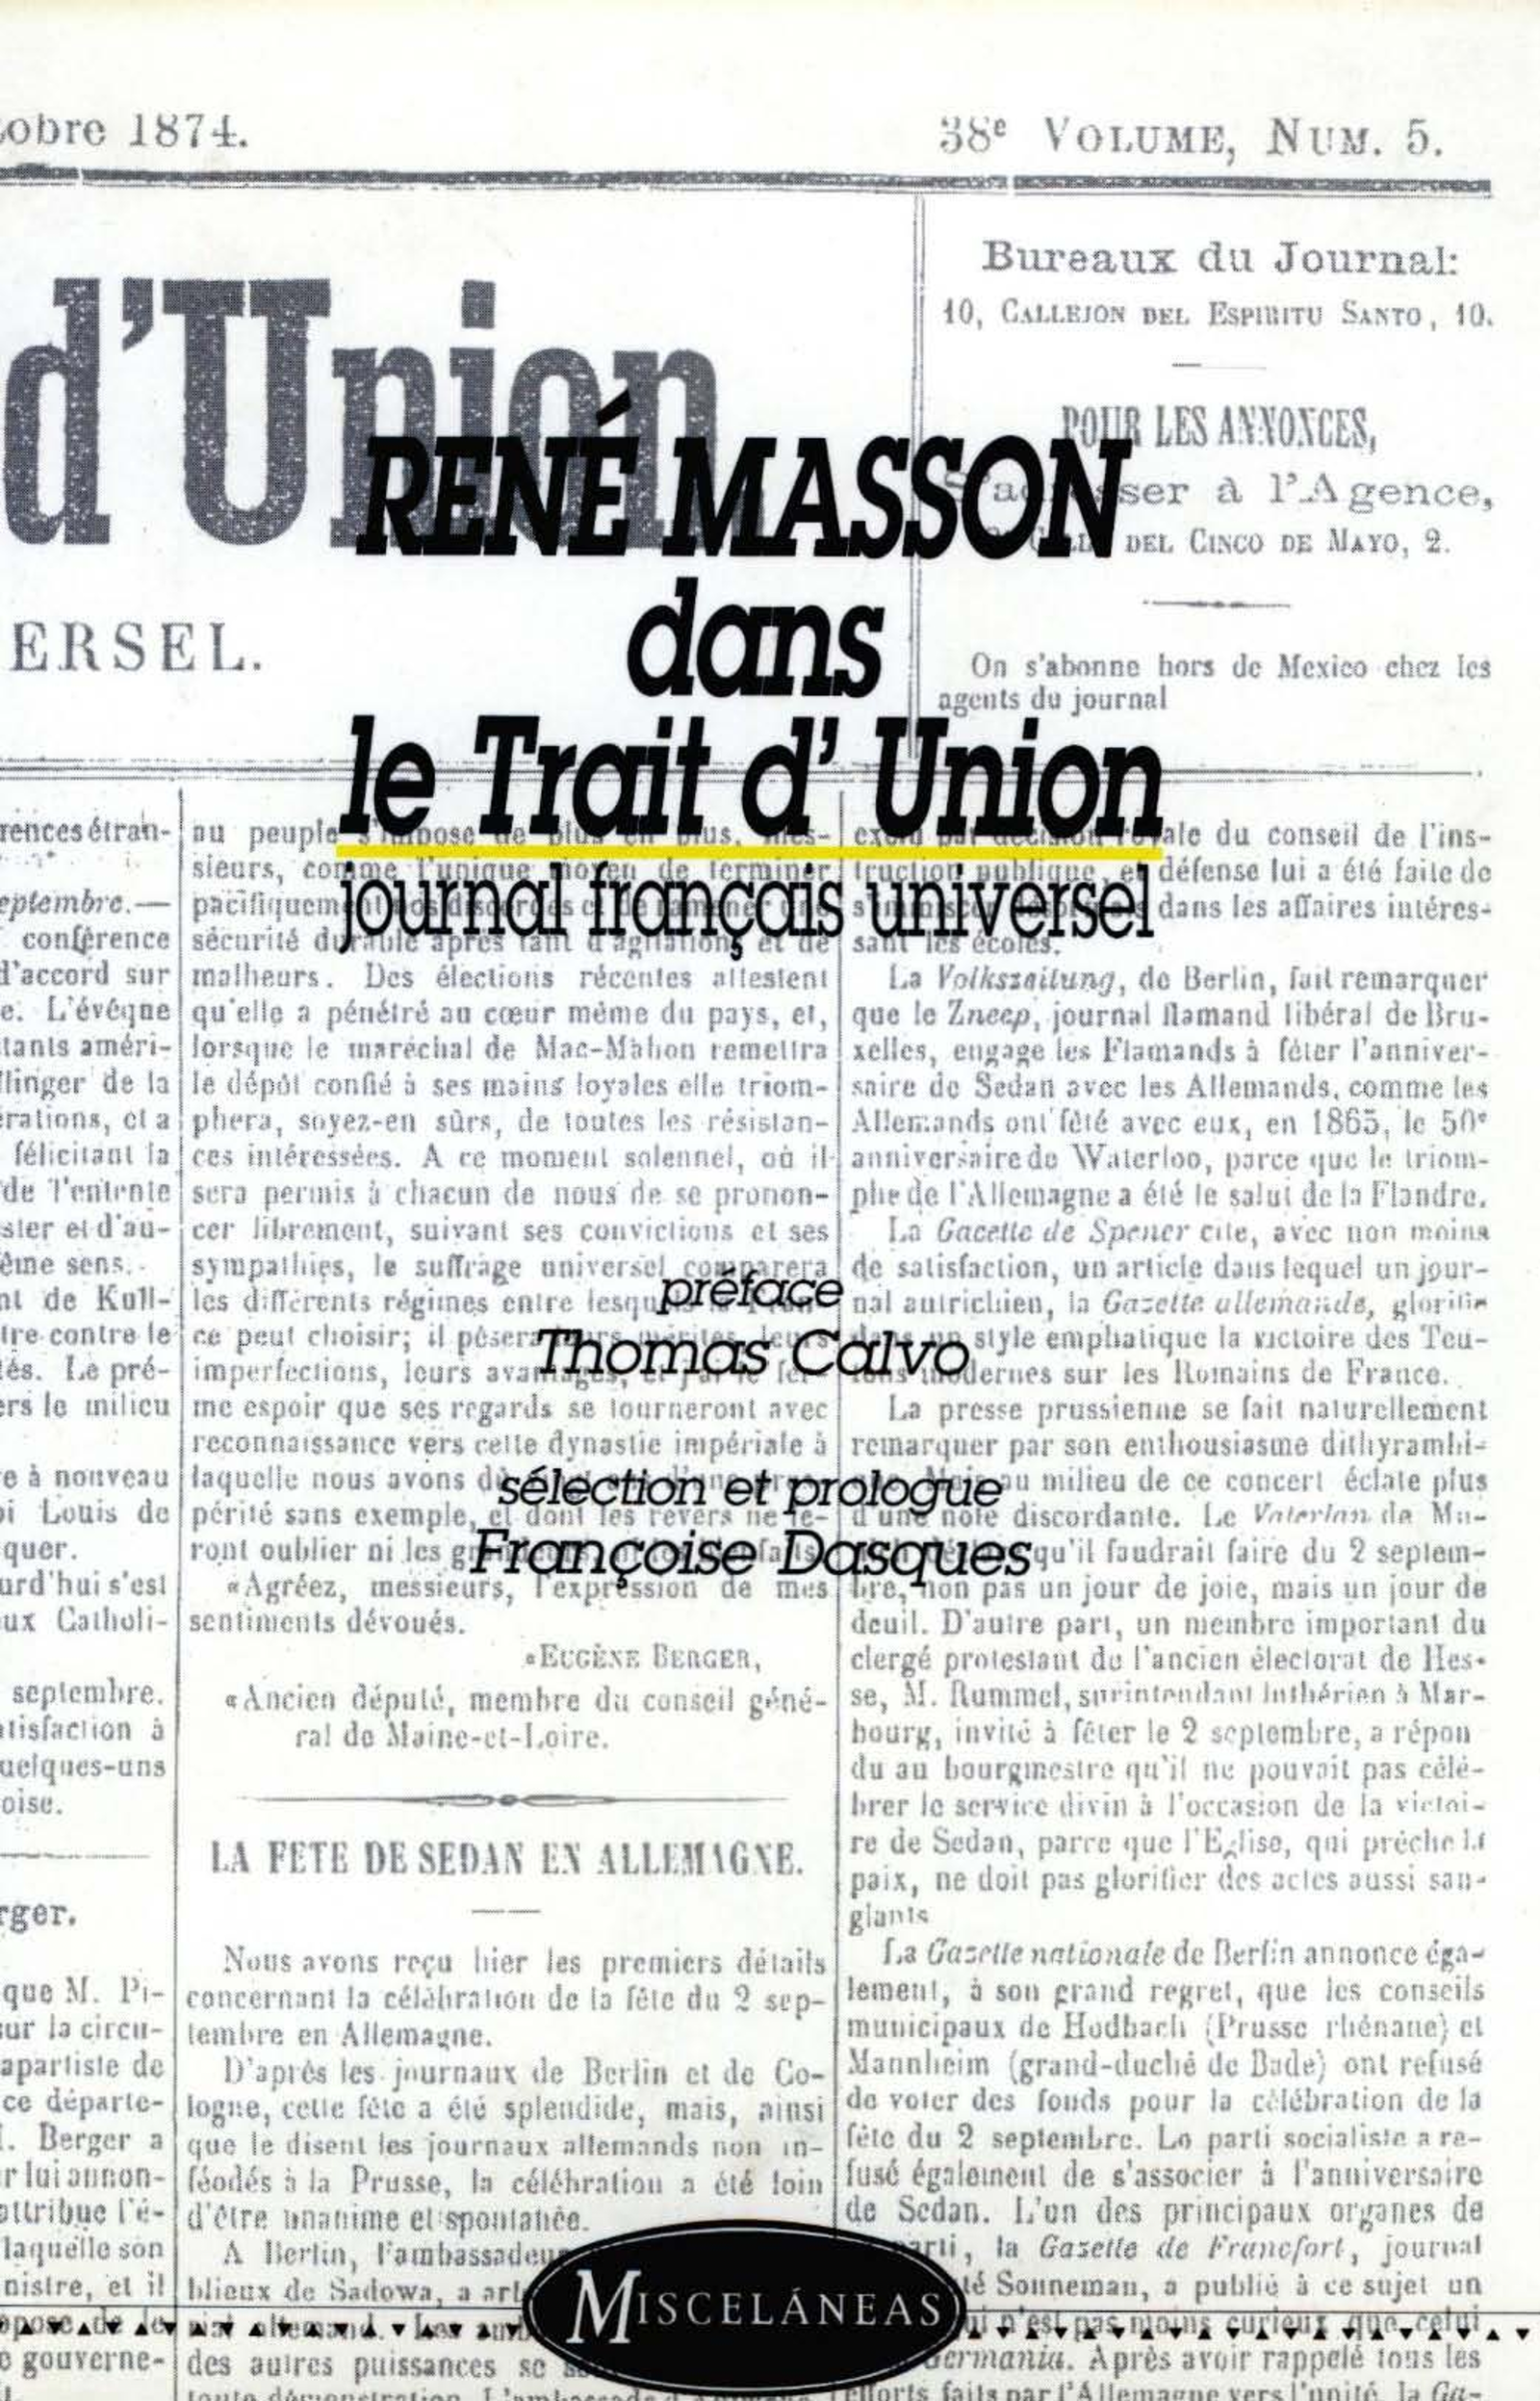 René Masson dans le Trait d'Union